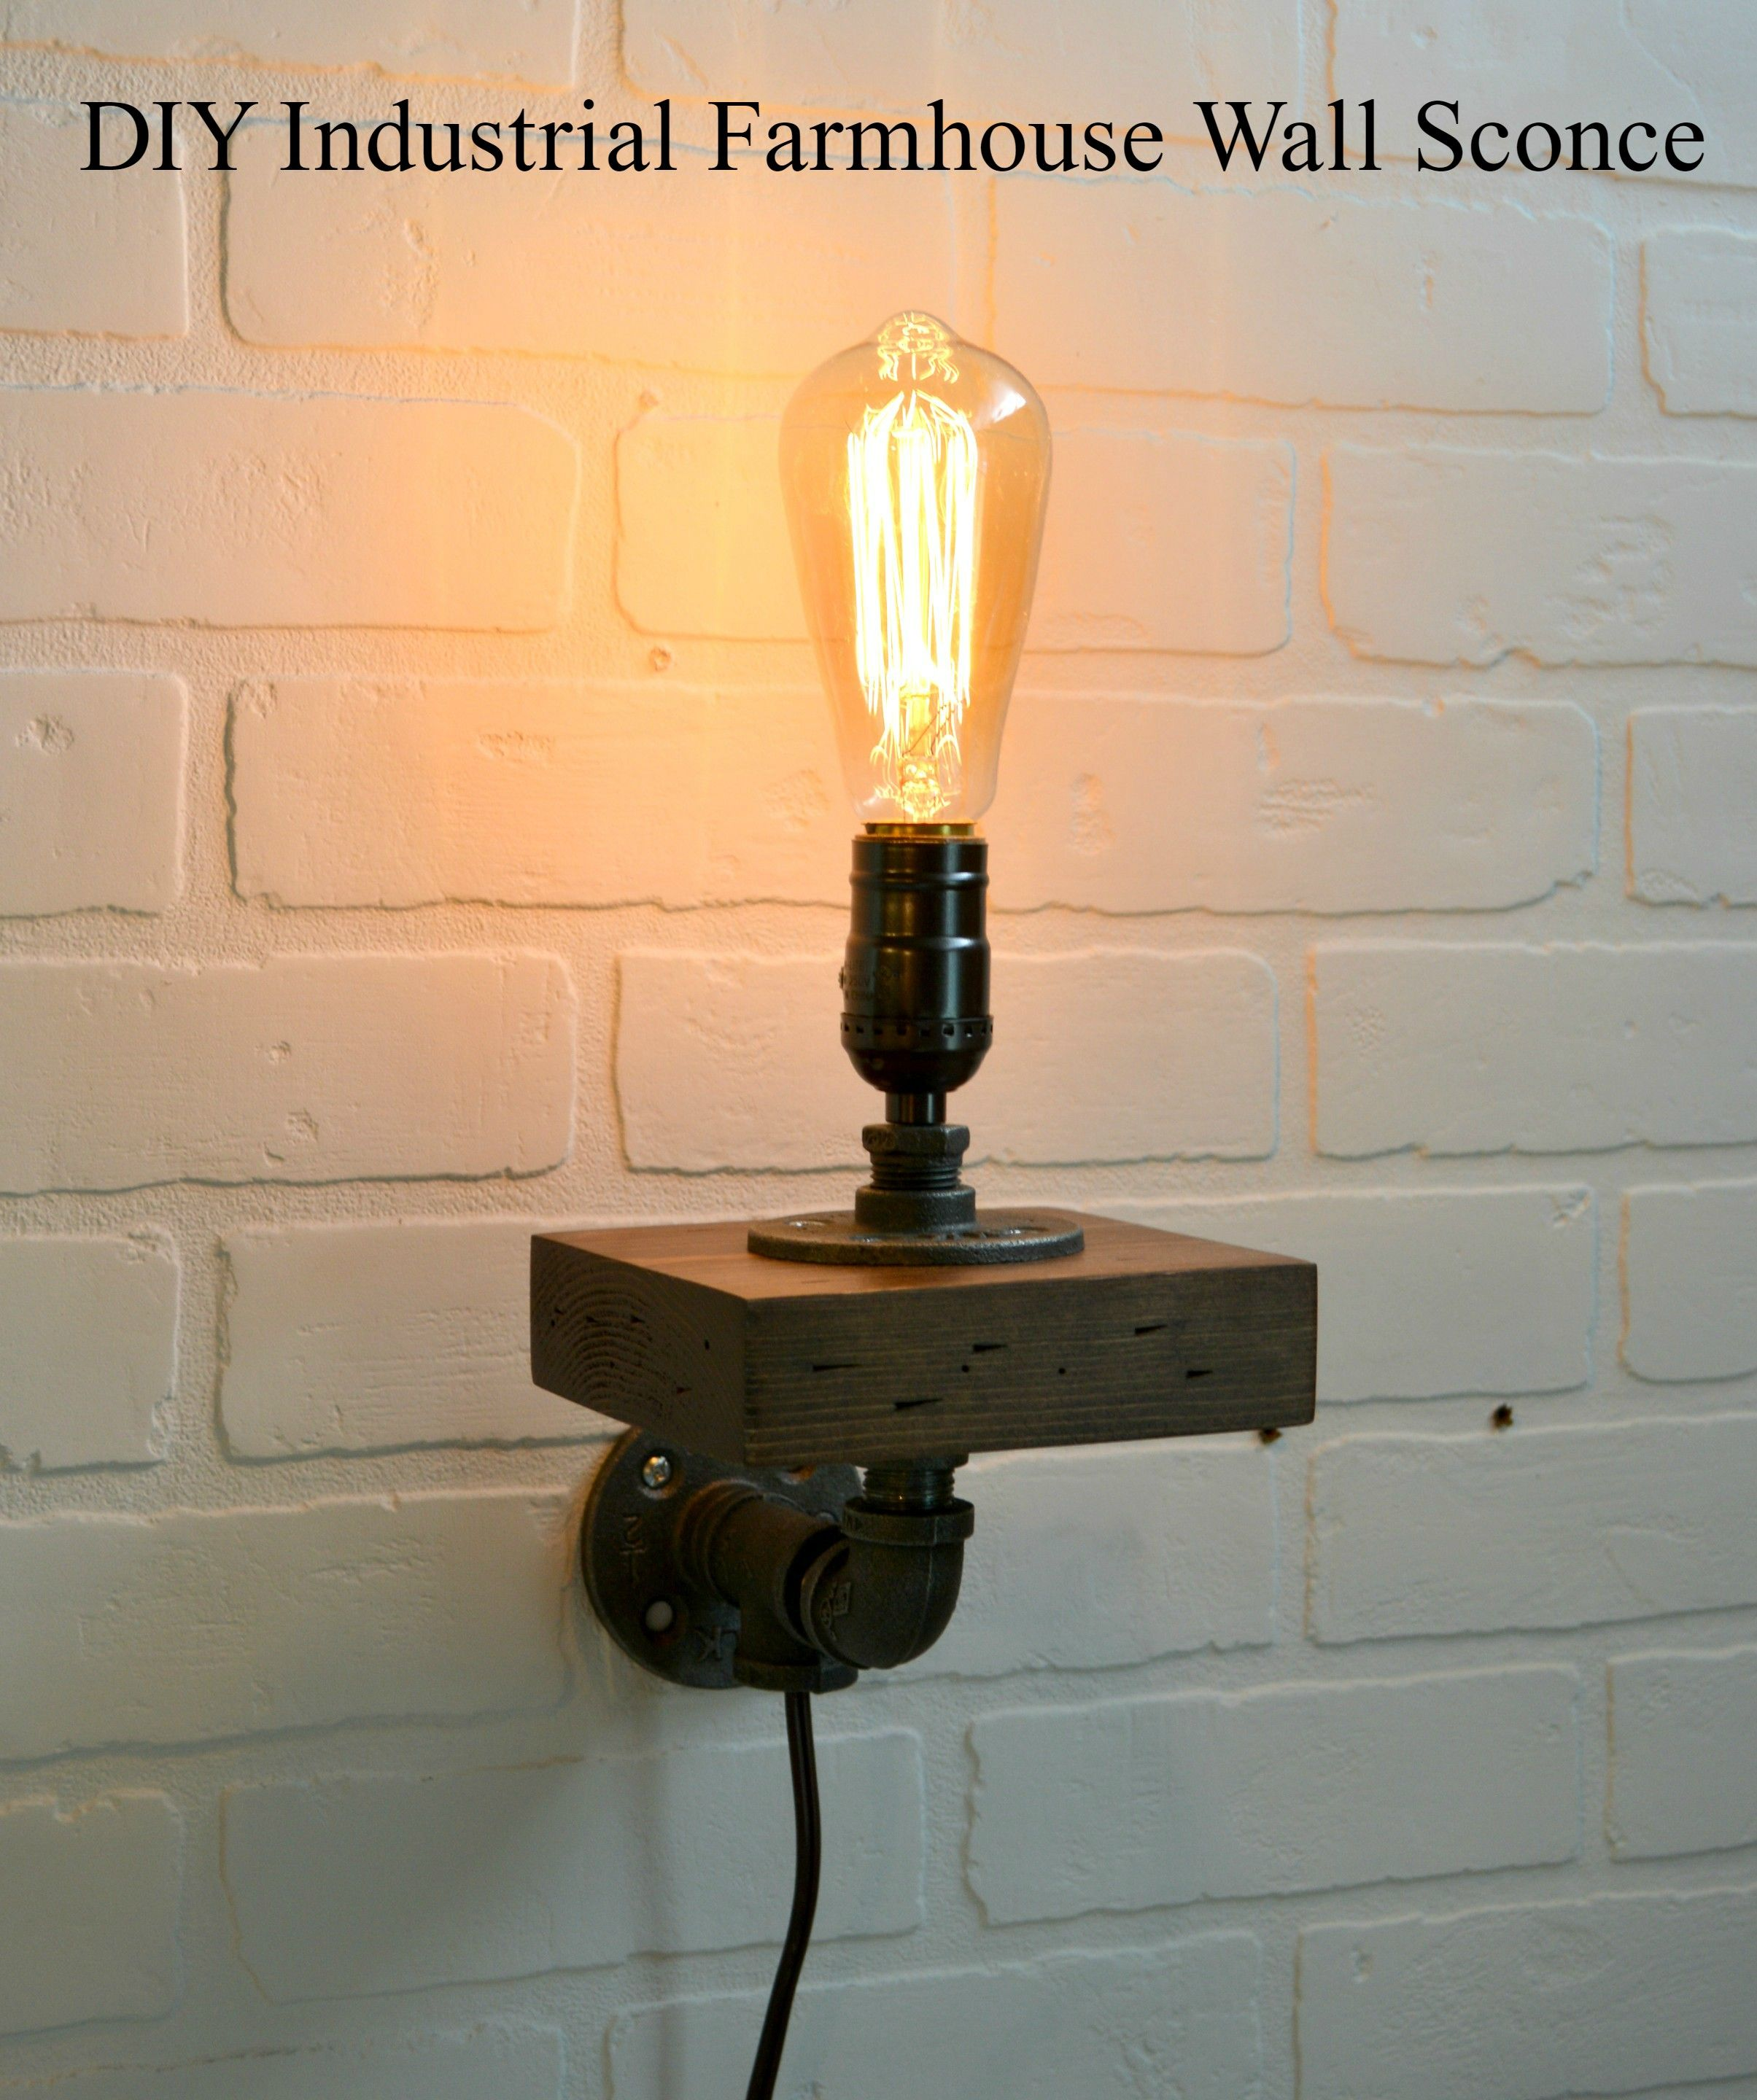 How to Make a Small Industrial Farmhouse Wall Sconce ...